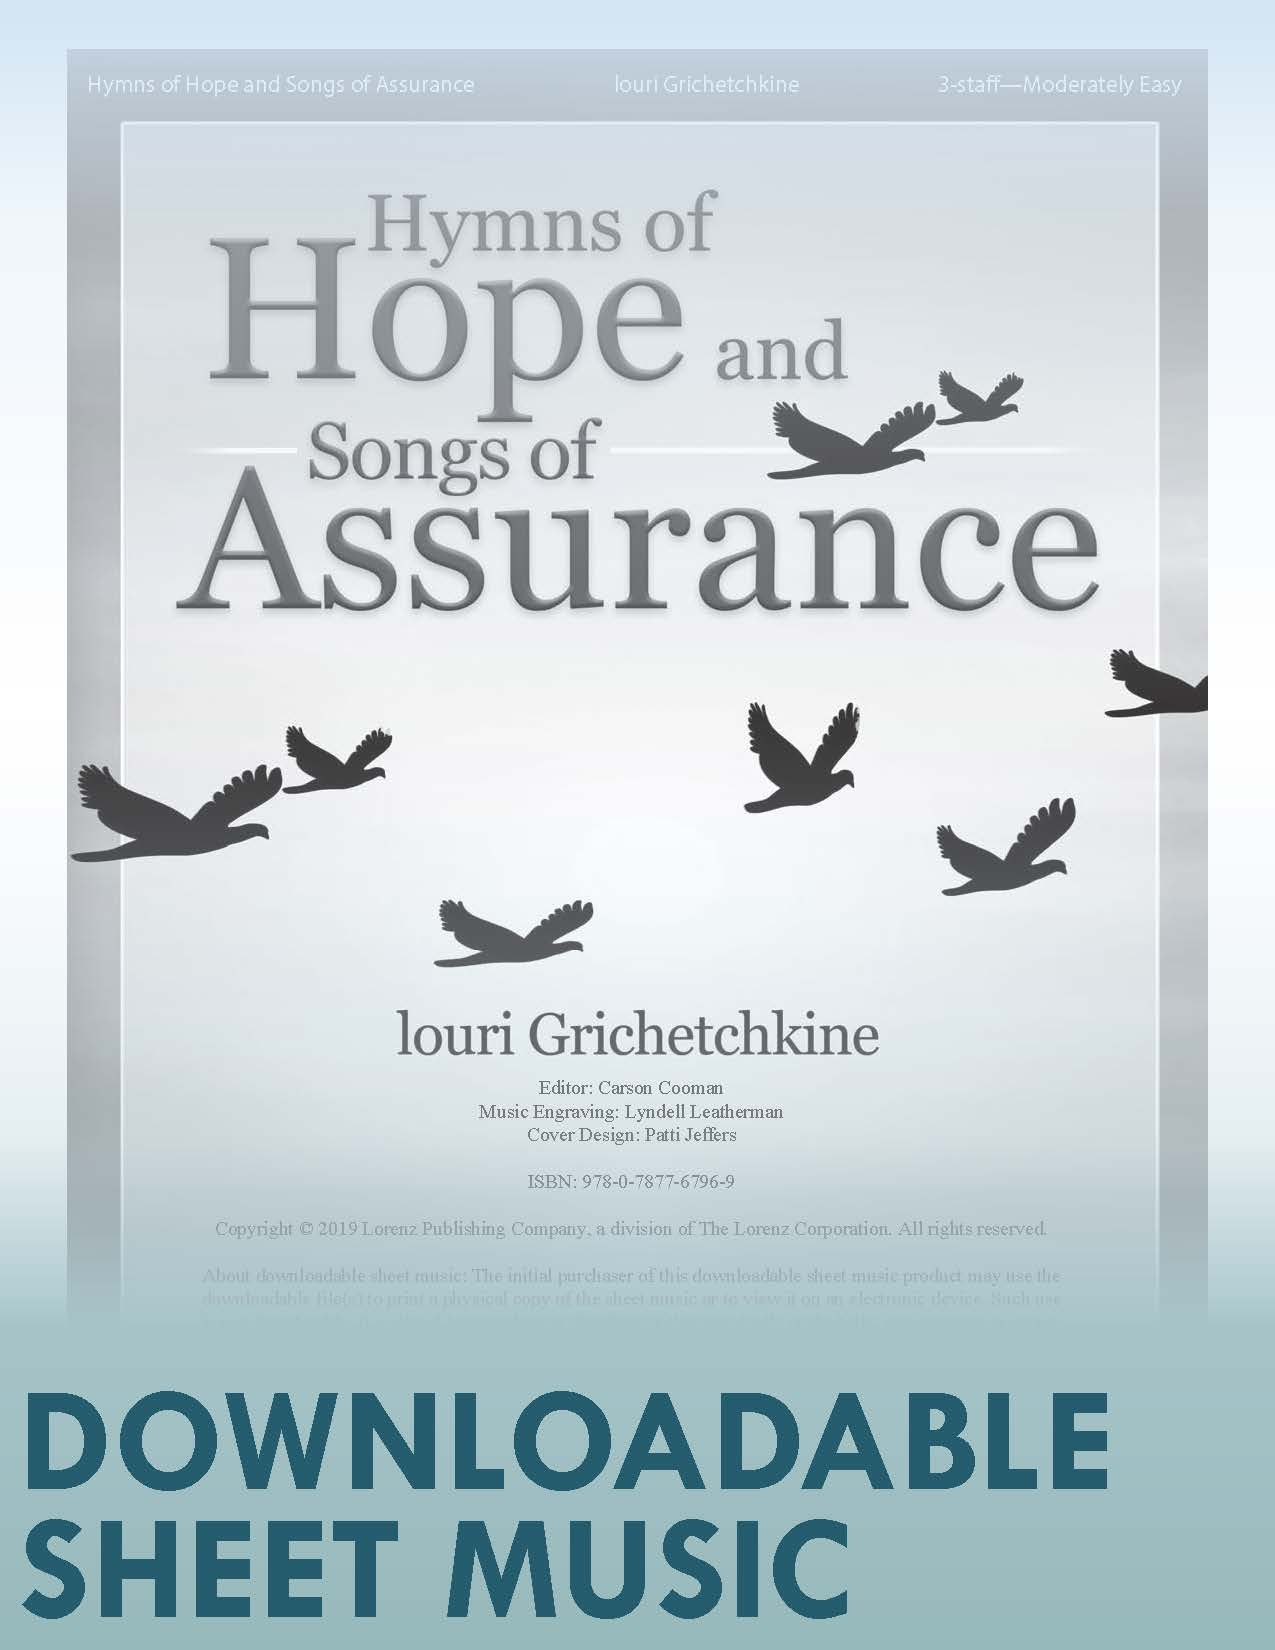 Hymns of Hope and Songs of Assurance - Digital Download